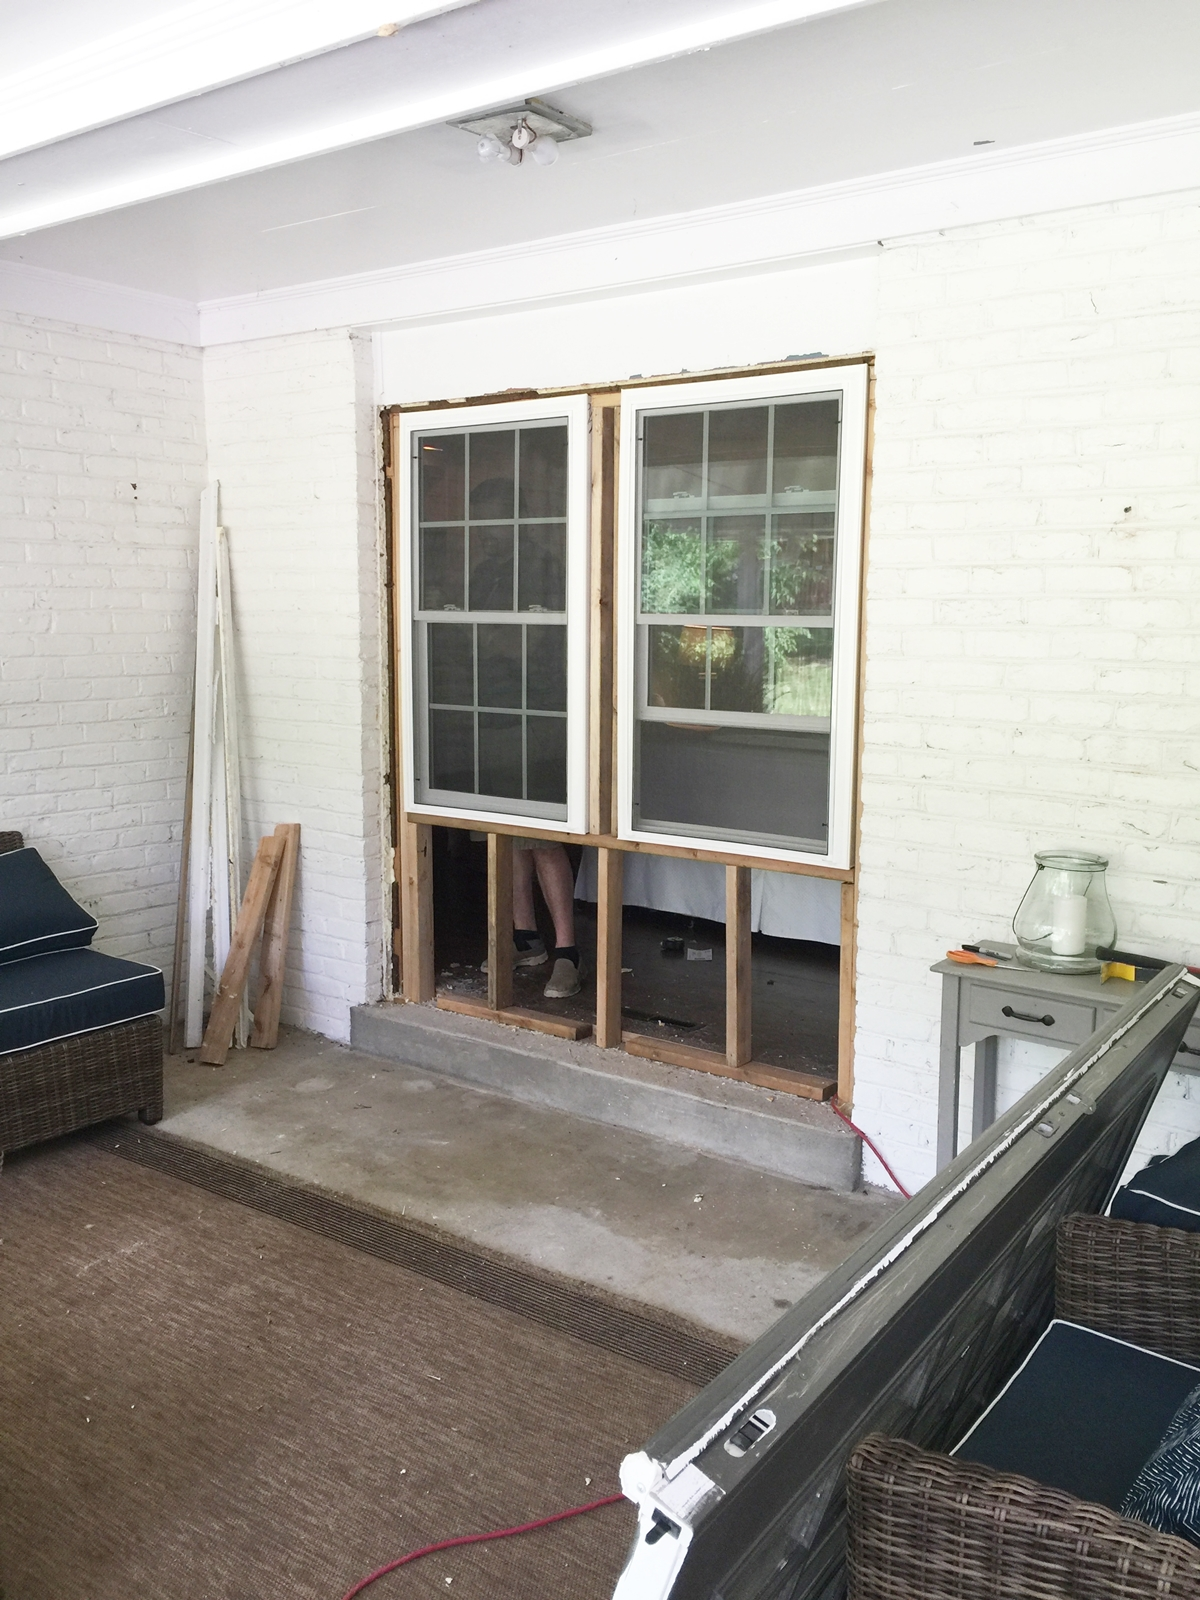 This Is What It Looked Like On The Inside. You Can See We Added New  Insulation Below The Windows. I Did Not Take A Picture Before We Left For  Our Trip, ...